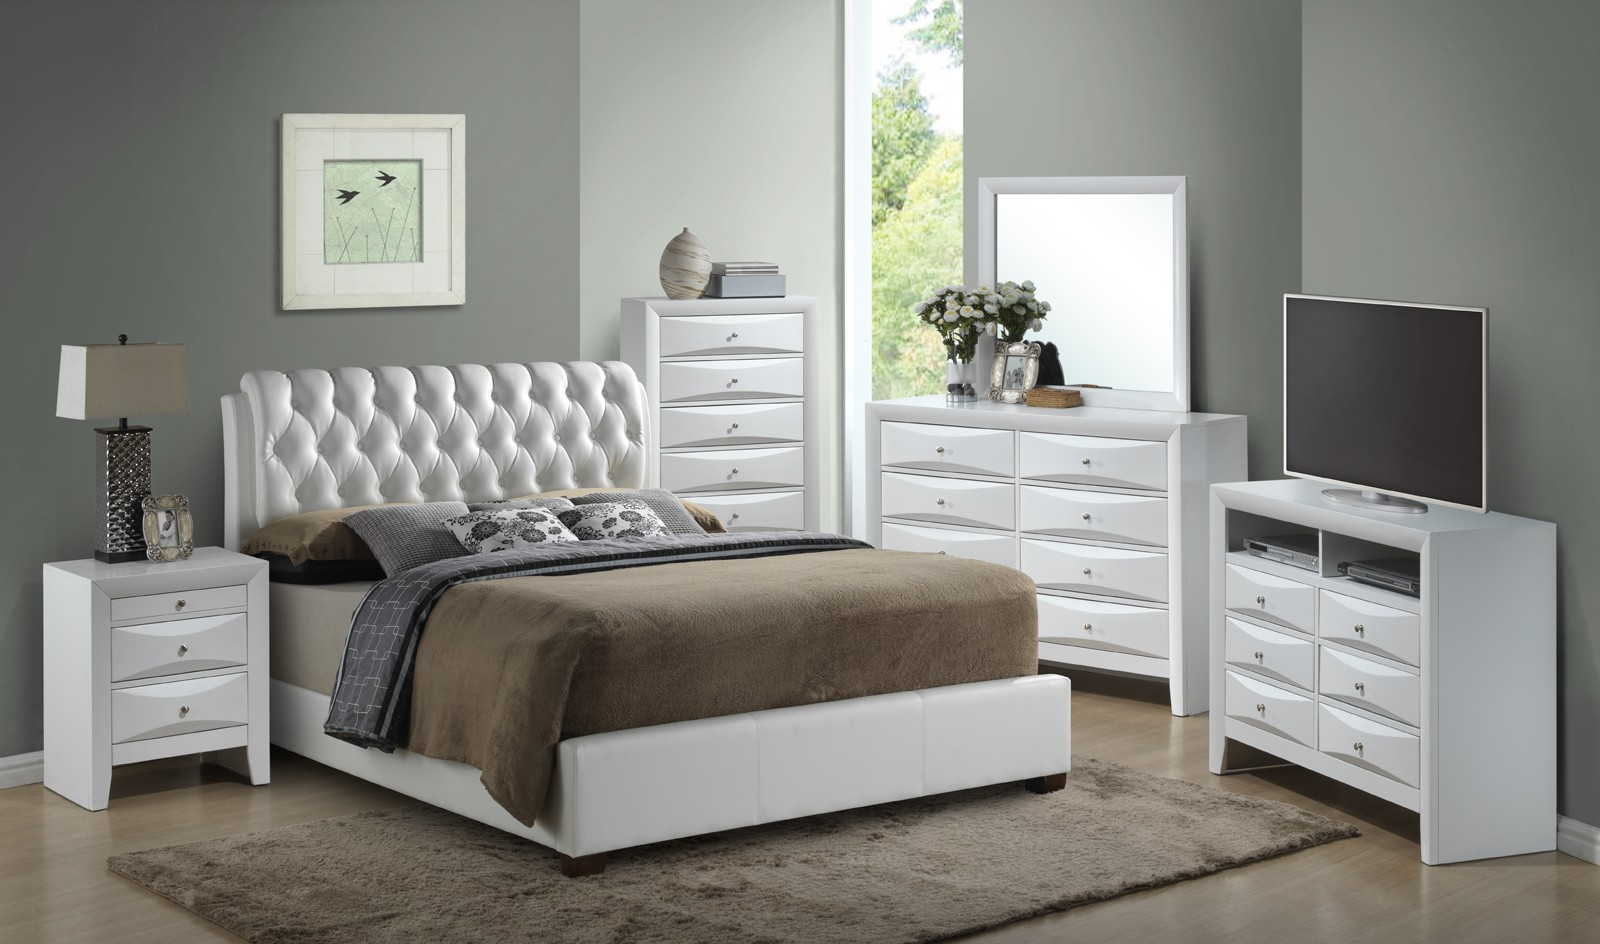 Glory Furniture G1570 Full Button-Tufted Bed in White G1570C-FB-UP